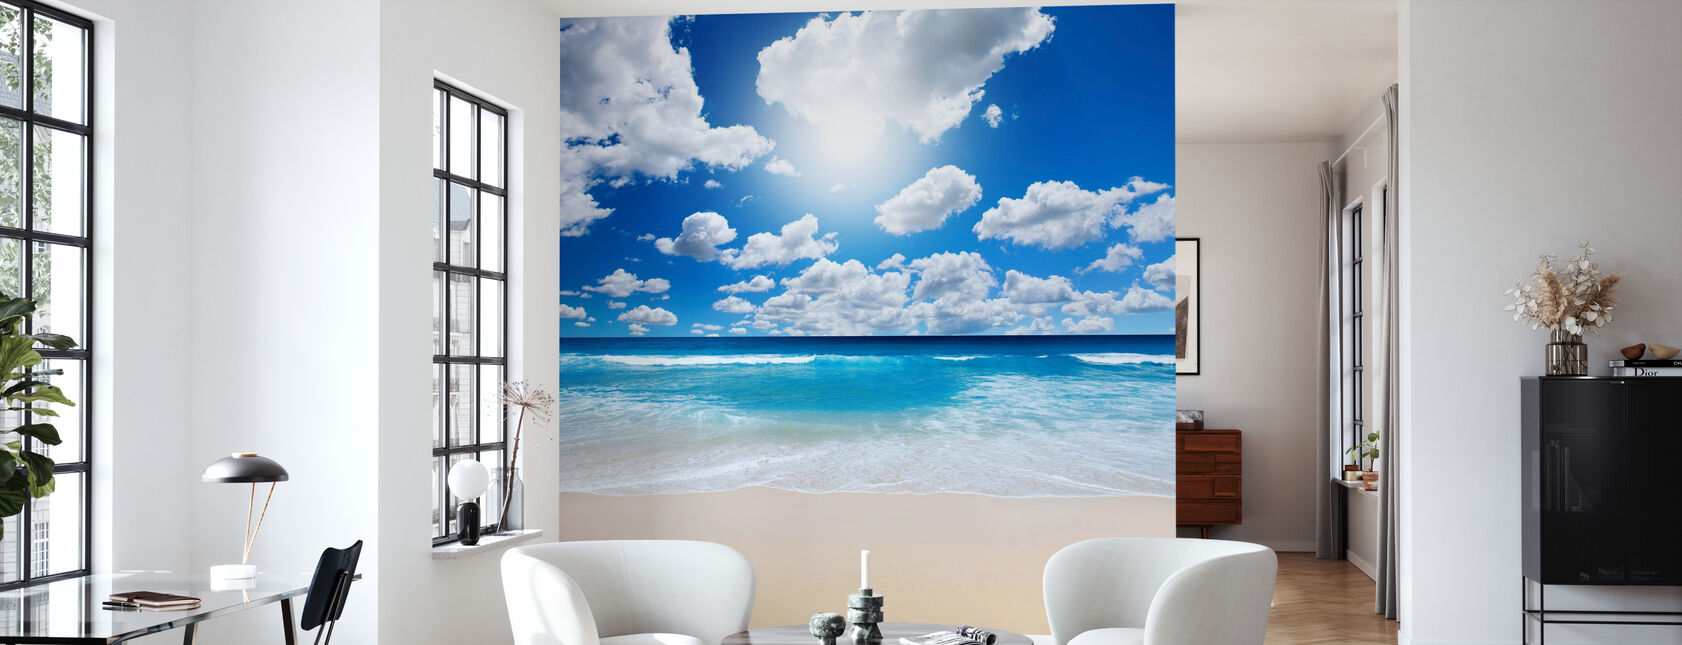 Summertime at the Beach - Wallpaper - Living Room